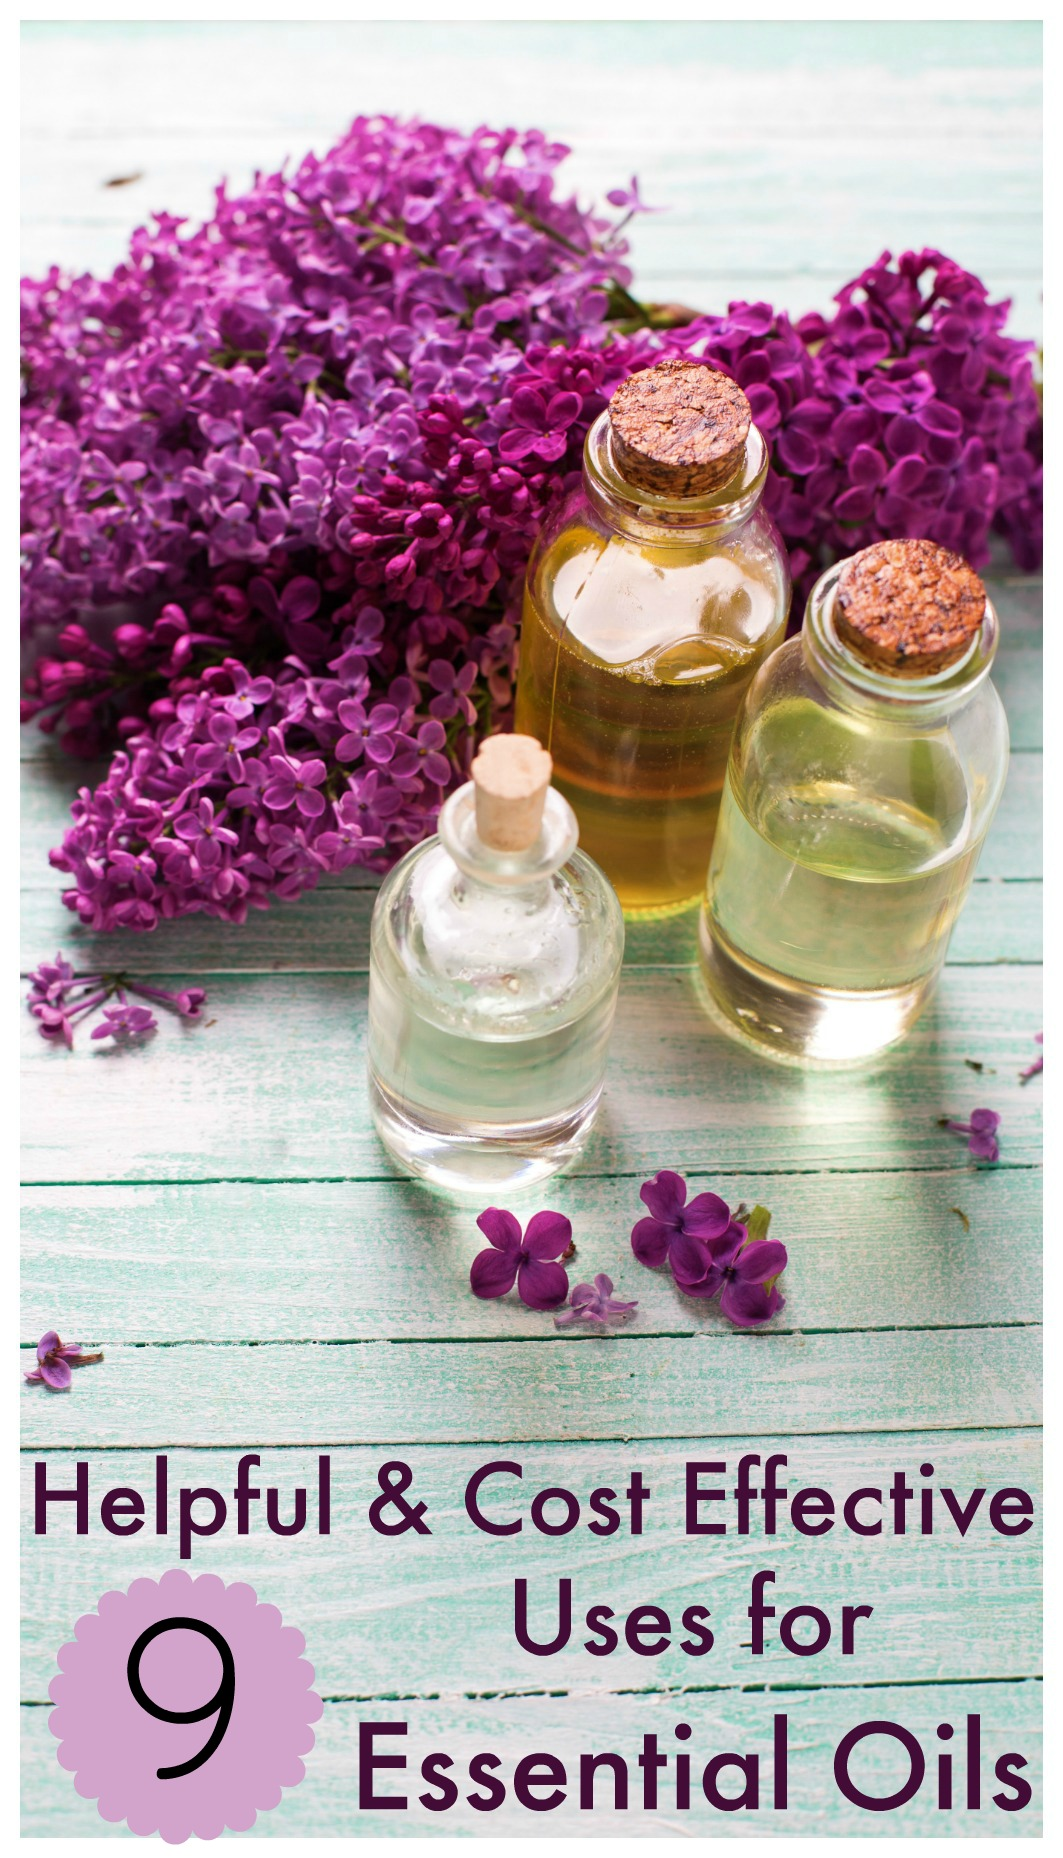 9 Helpful & Cost Effective Uses for Essential Oils